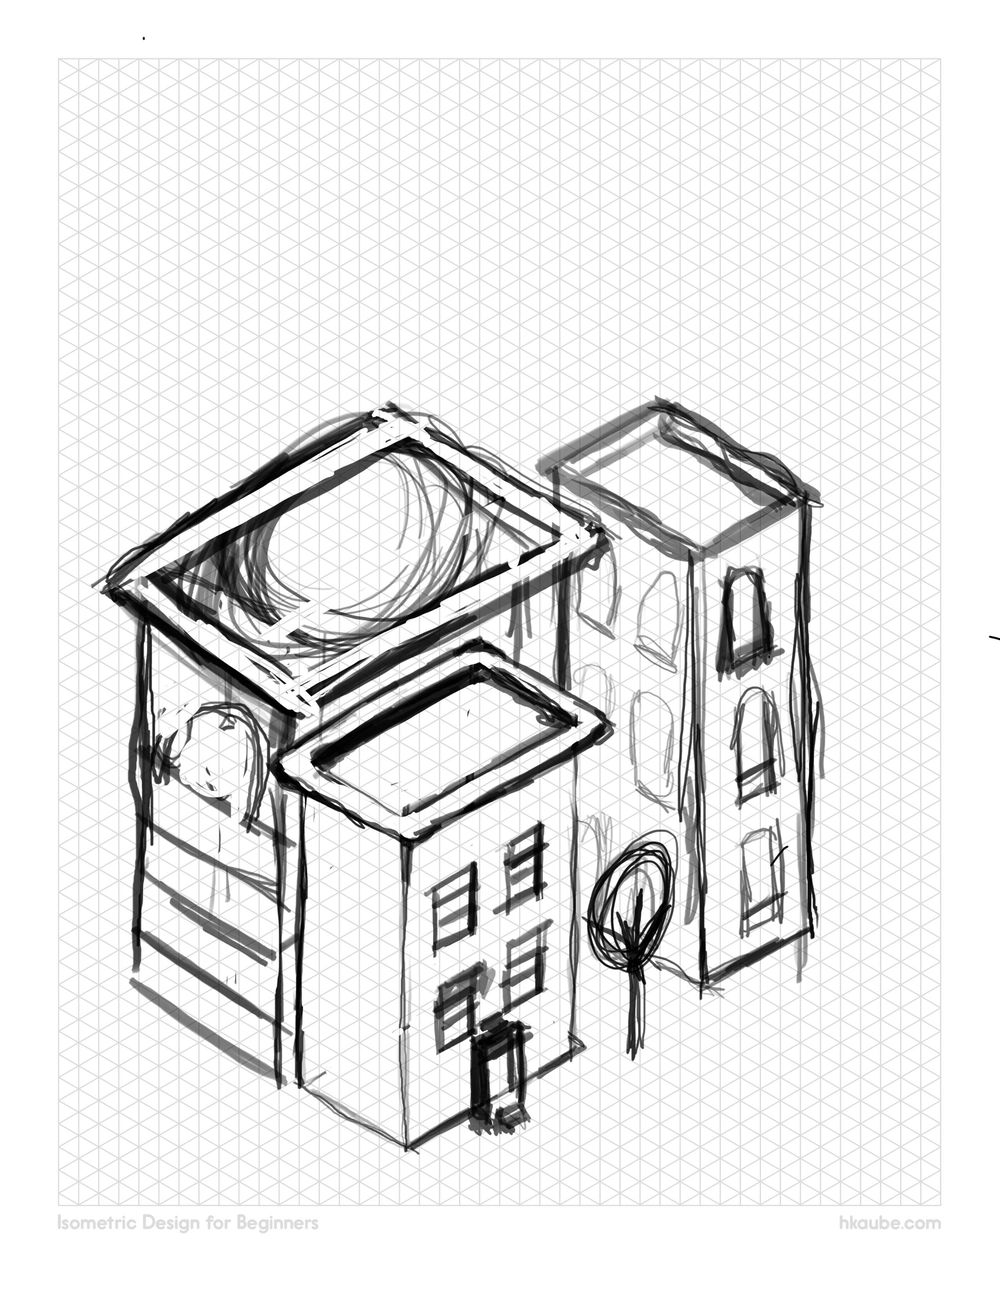 Isometric Buildings - image 1 - student project